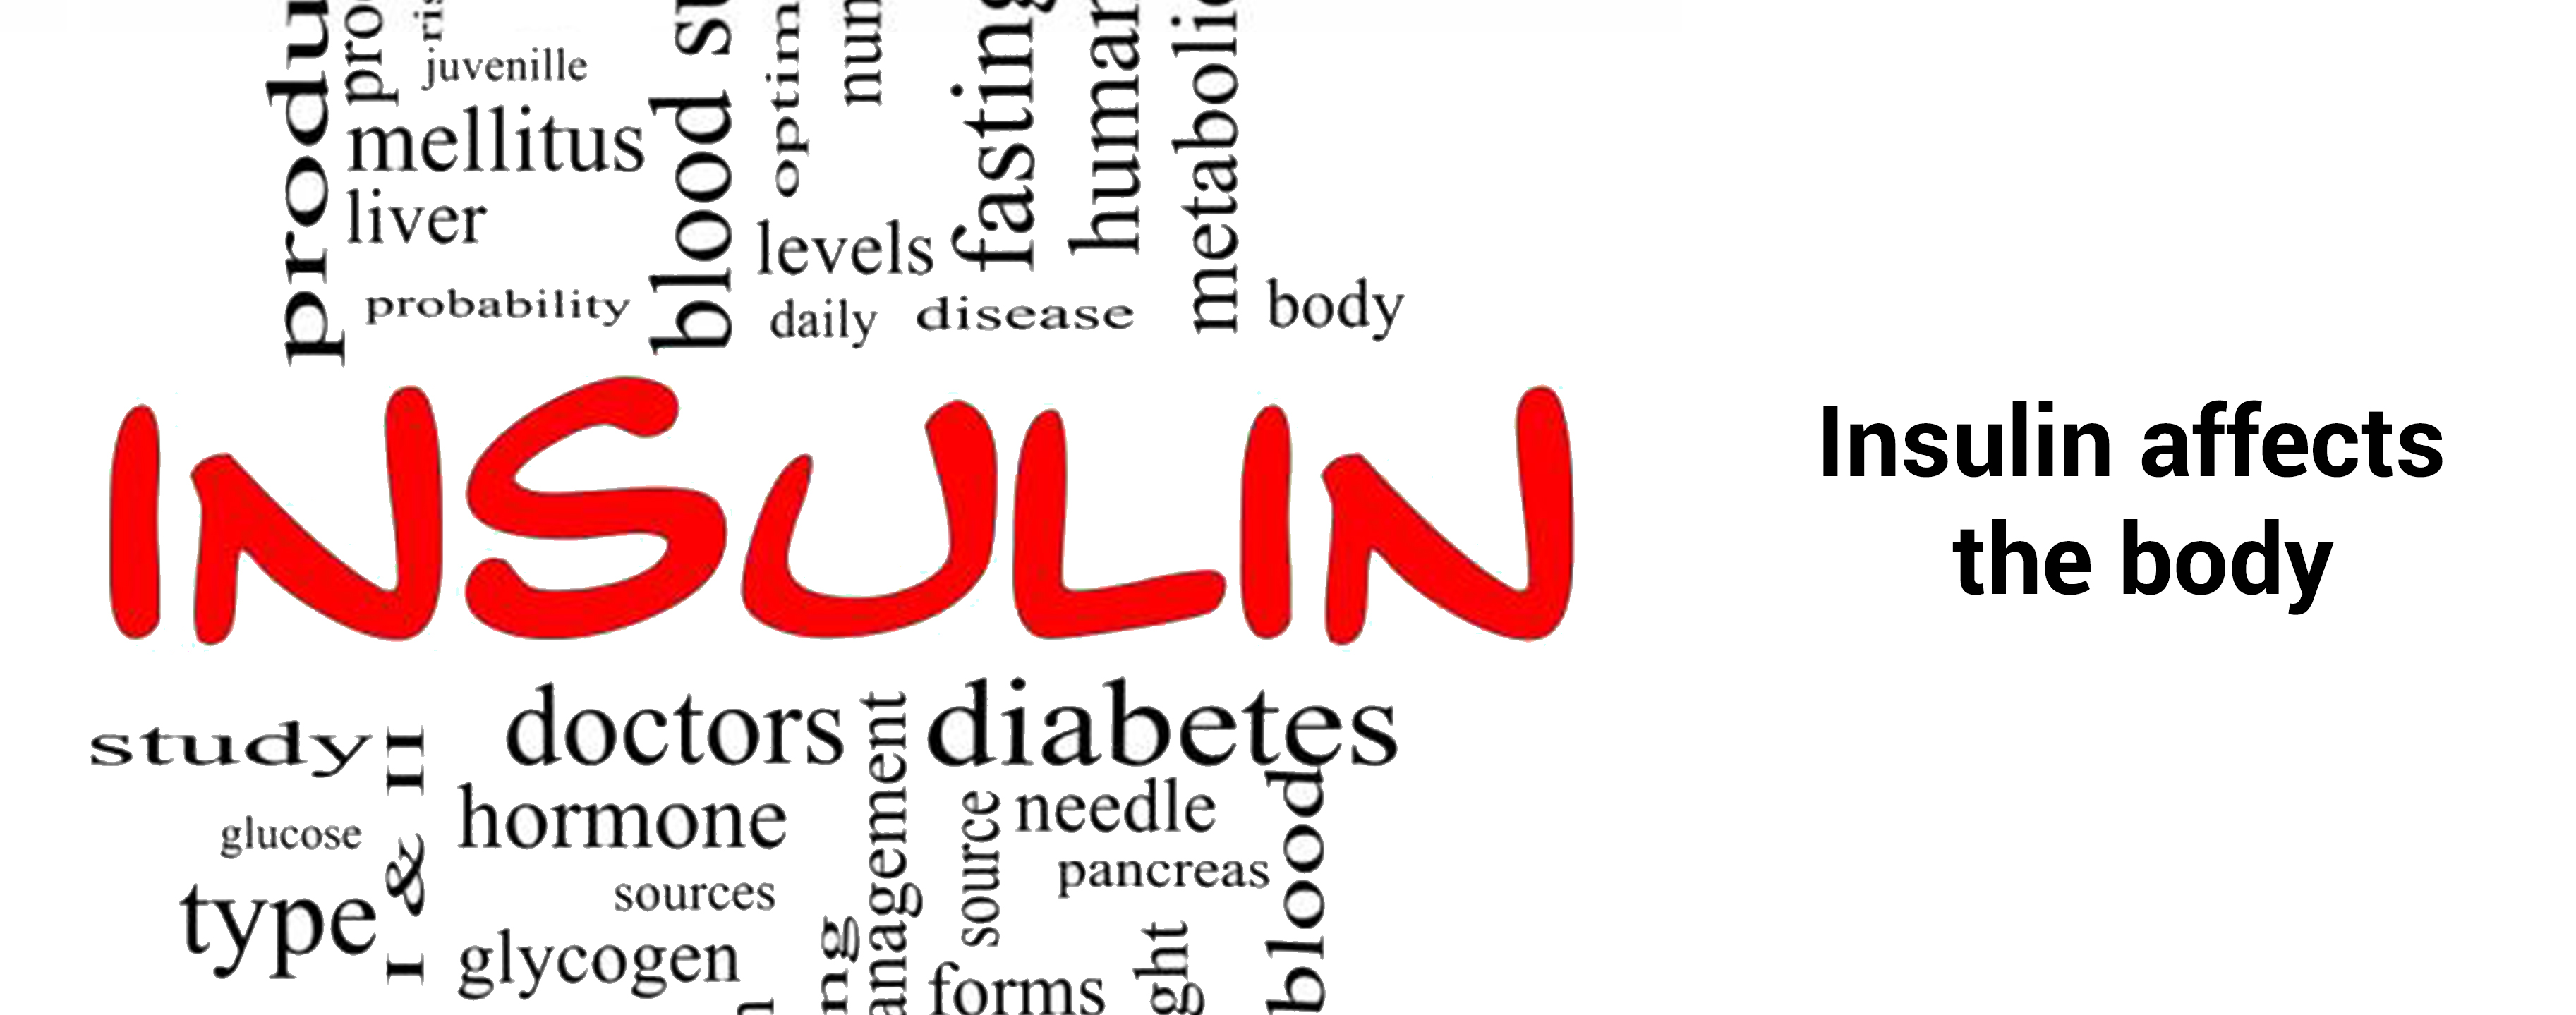 Effects of insulin on the body